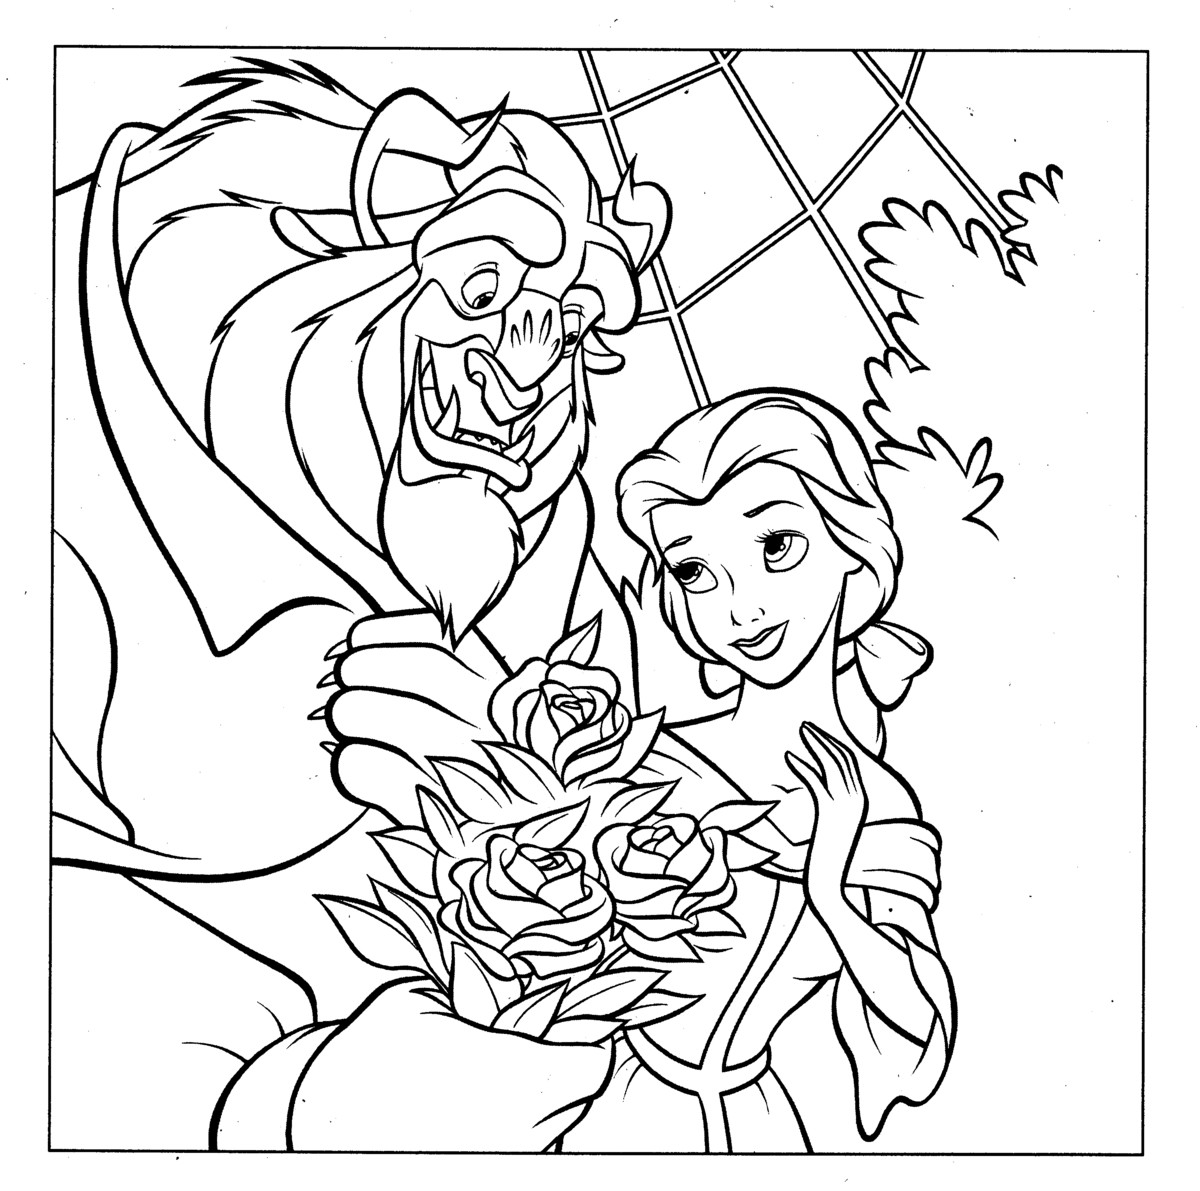 coloring pages beauty and the beast beauty and the beast coloringcolorcom beauty beast the coloring pages and